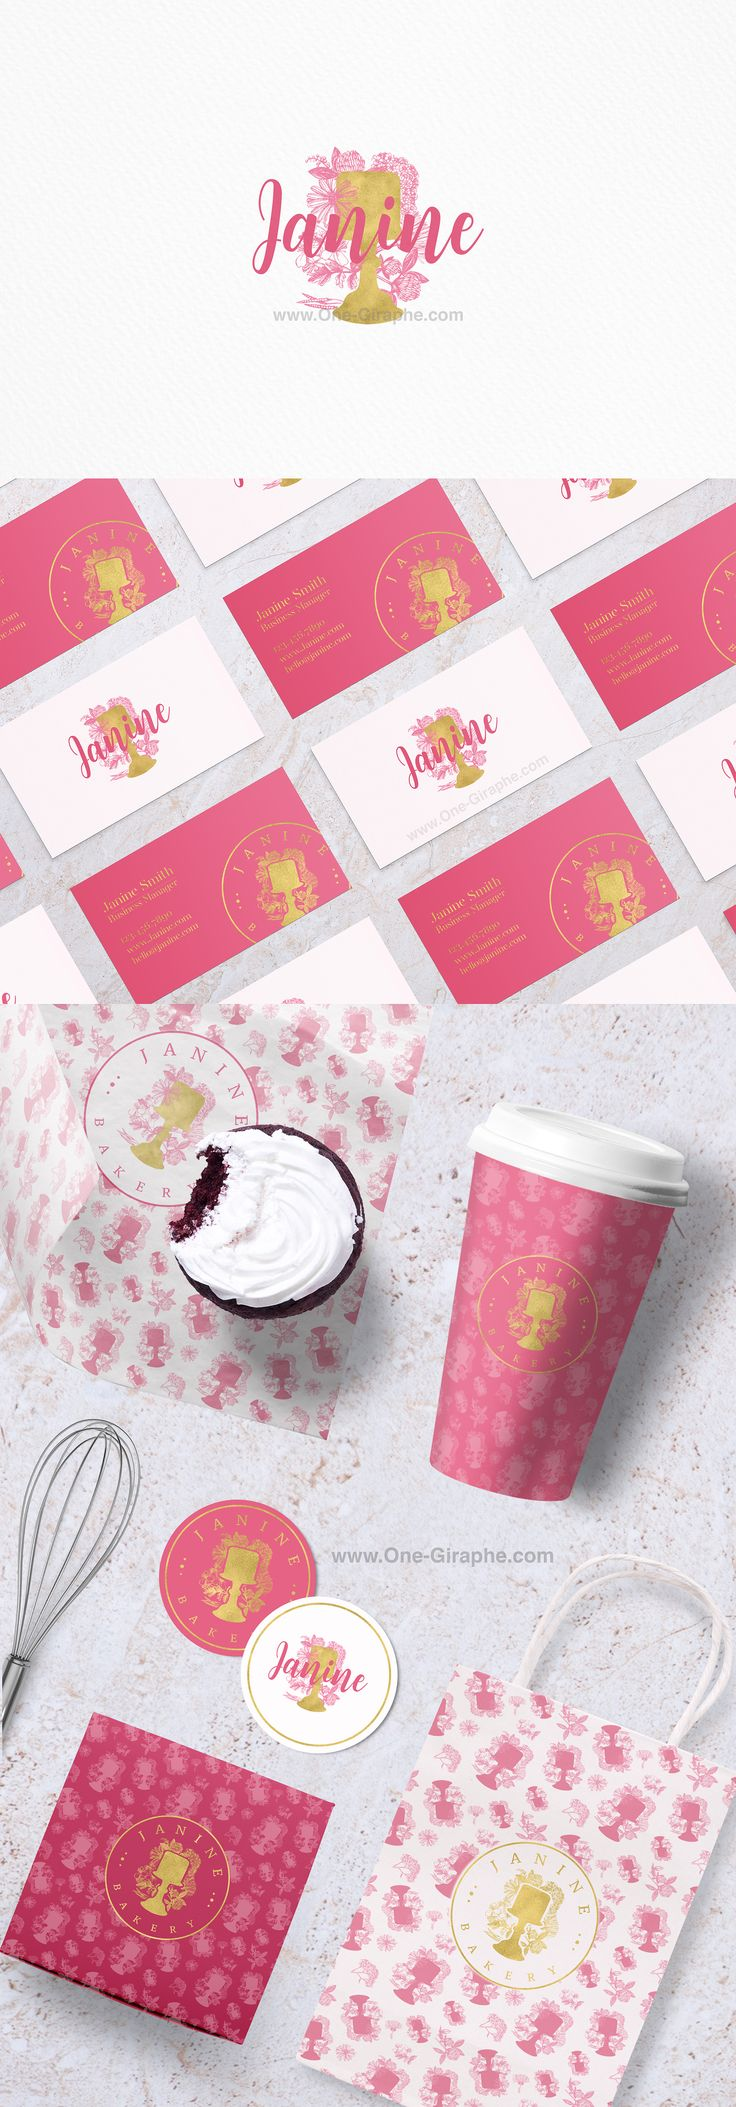 Are you looking for a logo and you're out of time? Customize this logo for your bakery: http://one-giraphe.com/prev.php?c=214  #logo #logostore #brandidentity #logodesign #graphicdesign #designer #bakery #etsy #needlogo #bakery #cake #cupcake #sweet #pink #packaging #designer #logodesign #logodesigner #etsy #behance